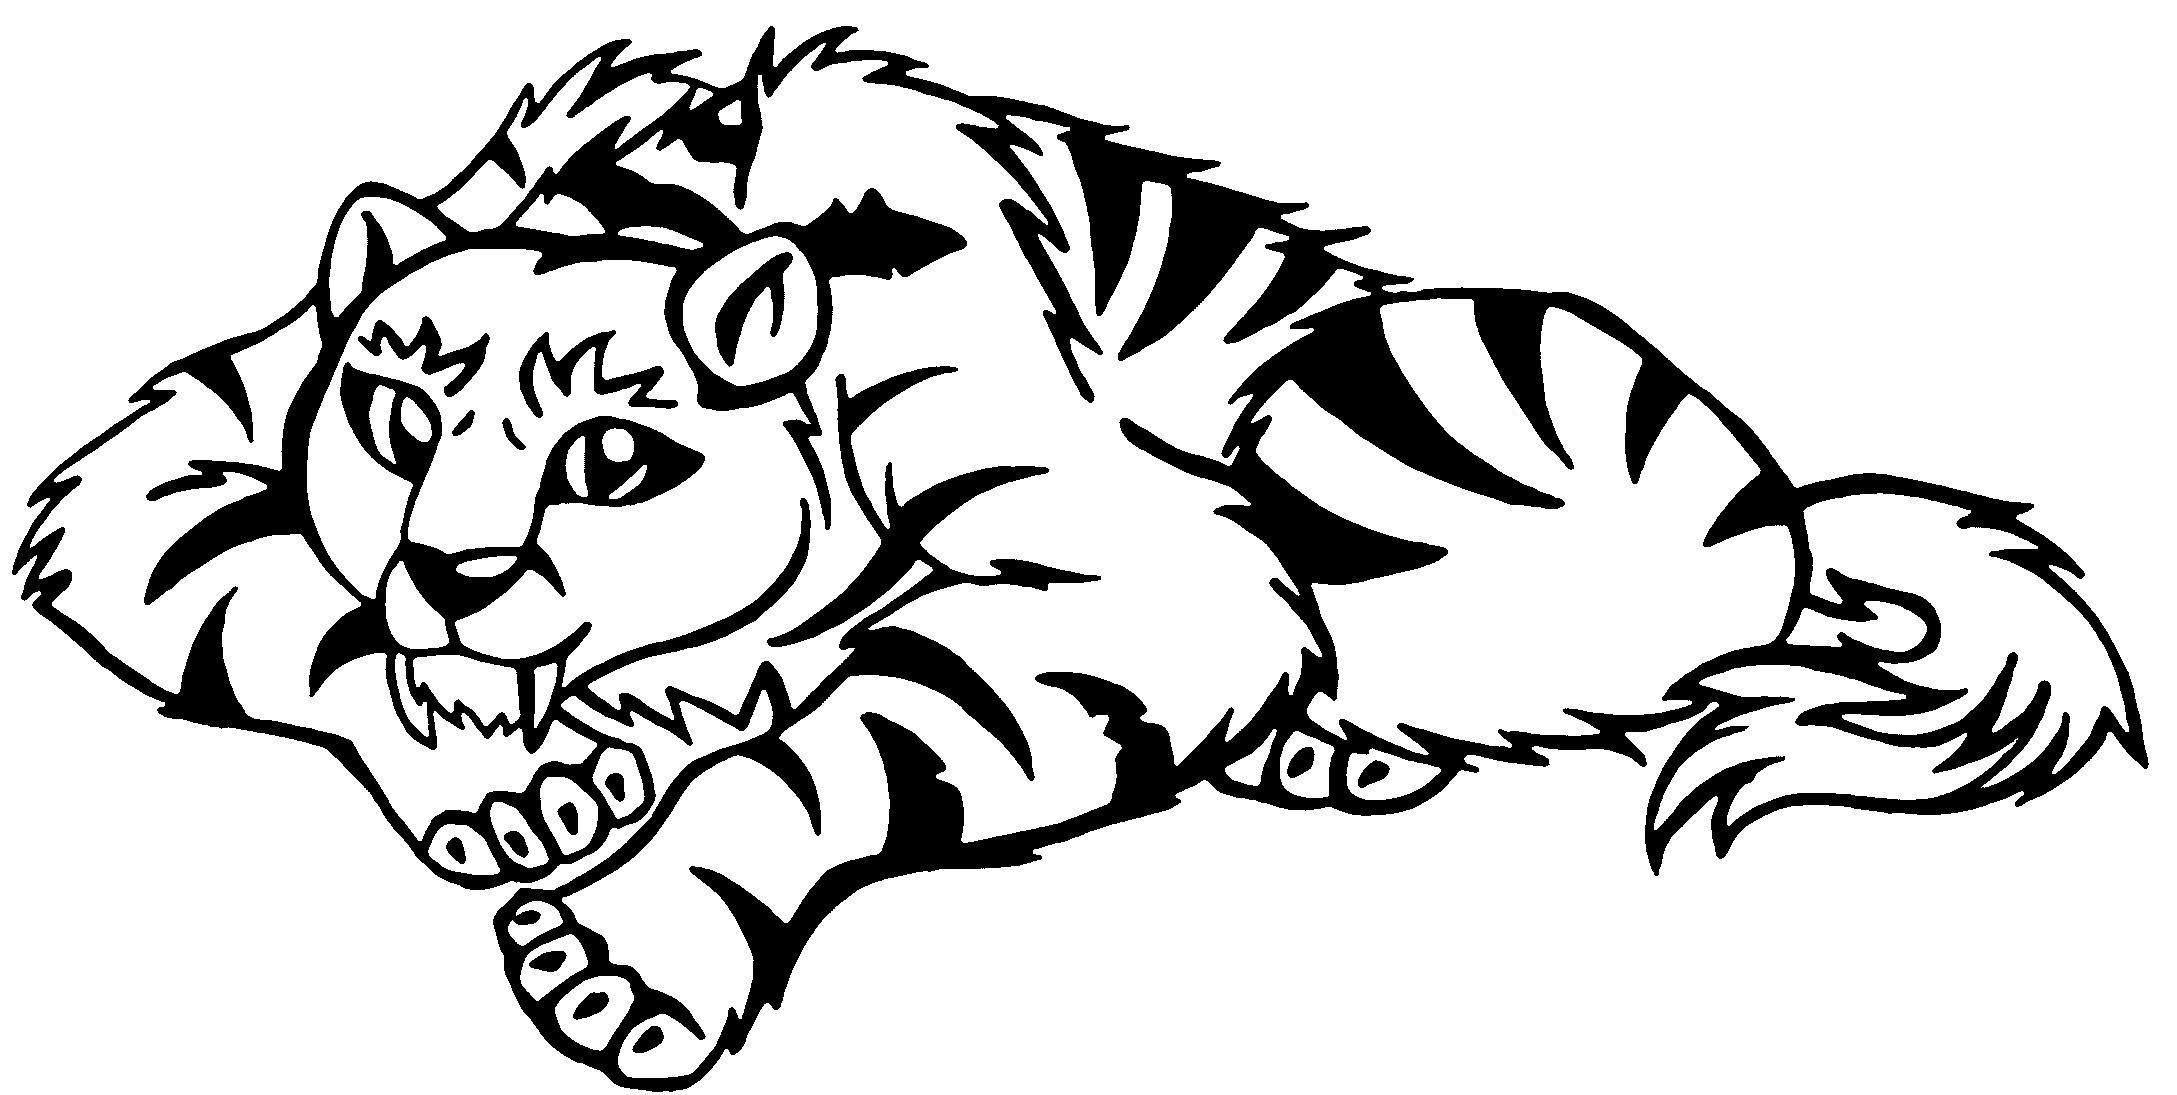 Download Free Saber Tooth Tiger Tattoo Sabre Tooth Tiger Tattoo To Use And Take To Your Artist Recipe Animal Coloring Pages Coloring Pages Cute Coloring Pages